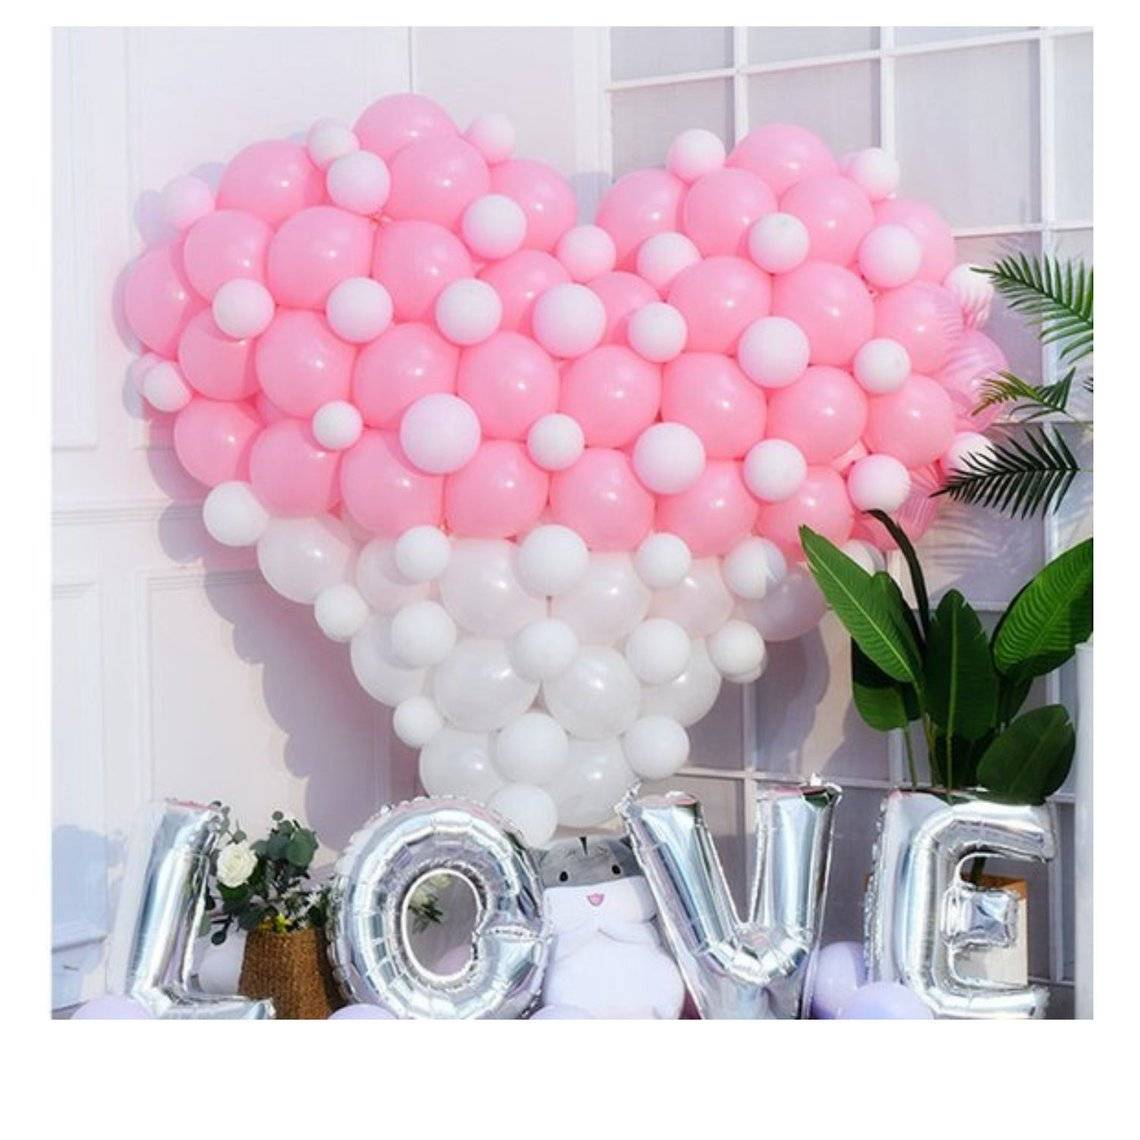 Valentine's day Exclusive Decor Giant Heart Balloon Set | Engagement Party | Wedding Decor | Marriage proposal | Pink balloon garlands